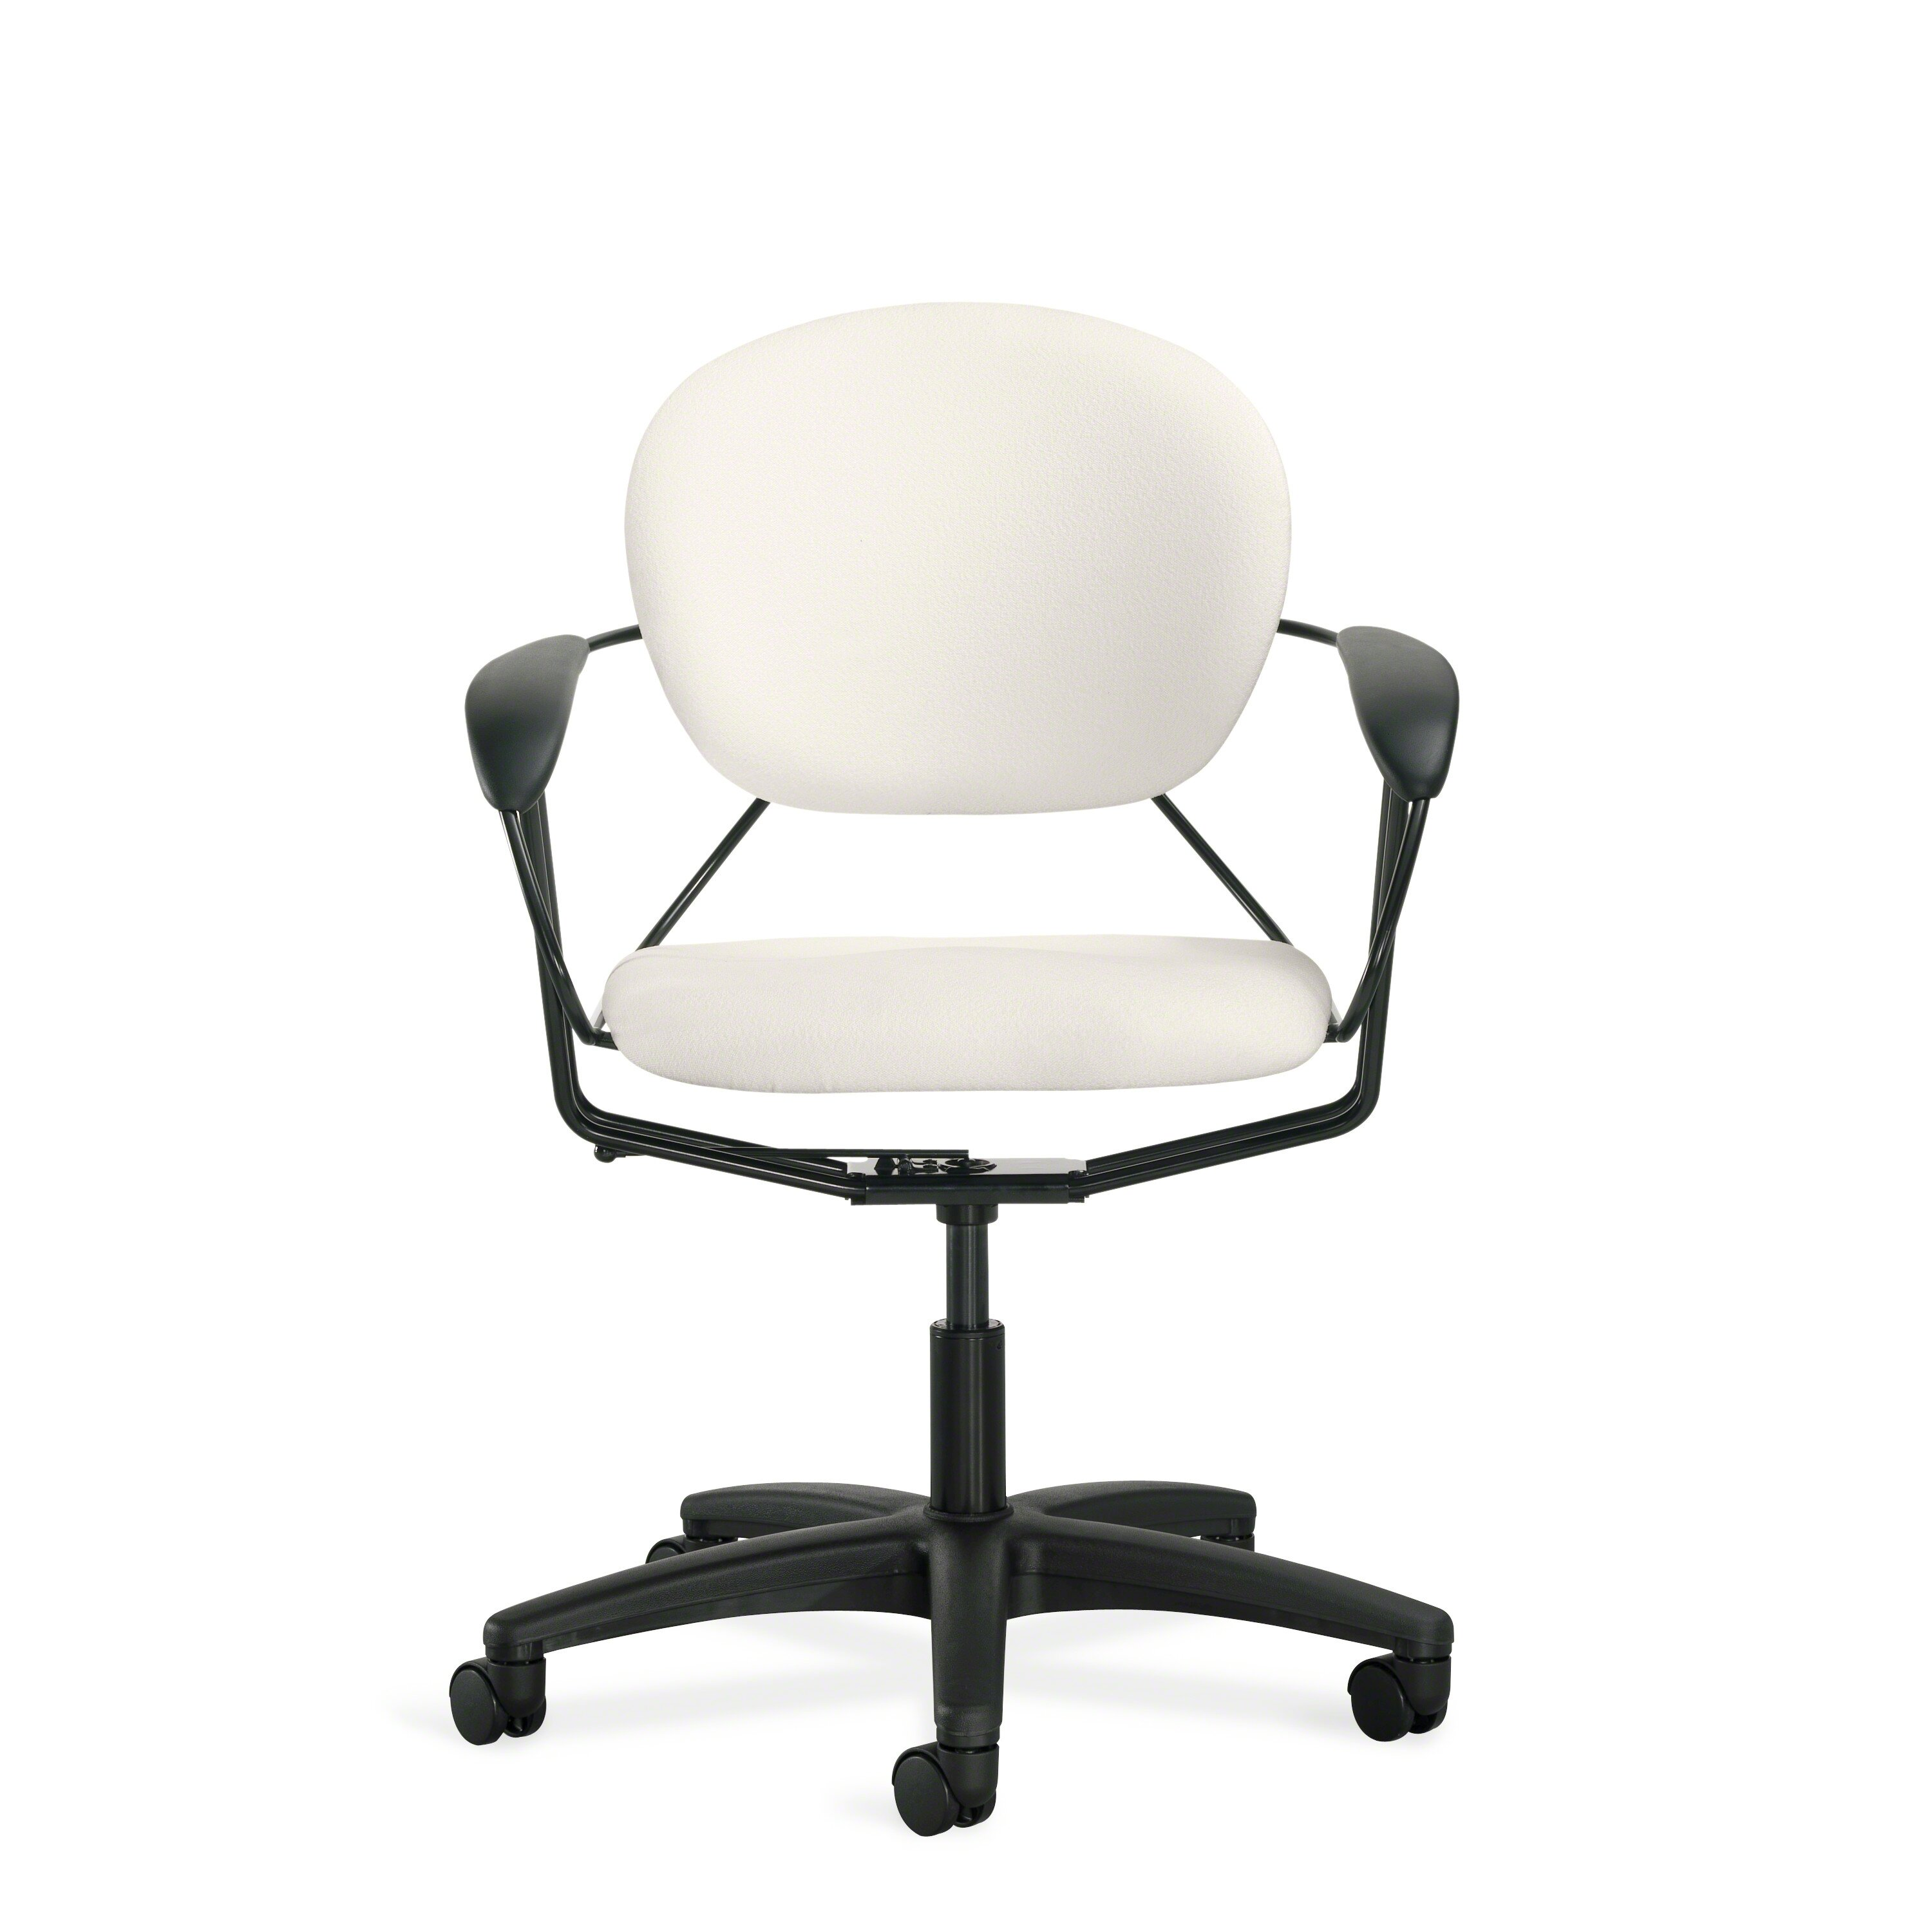 Steel Case fice Chairs